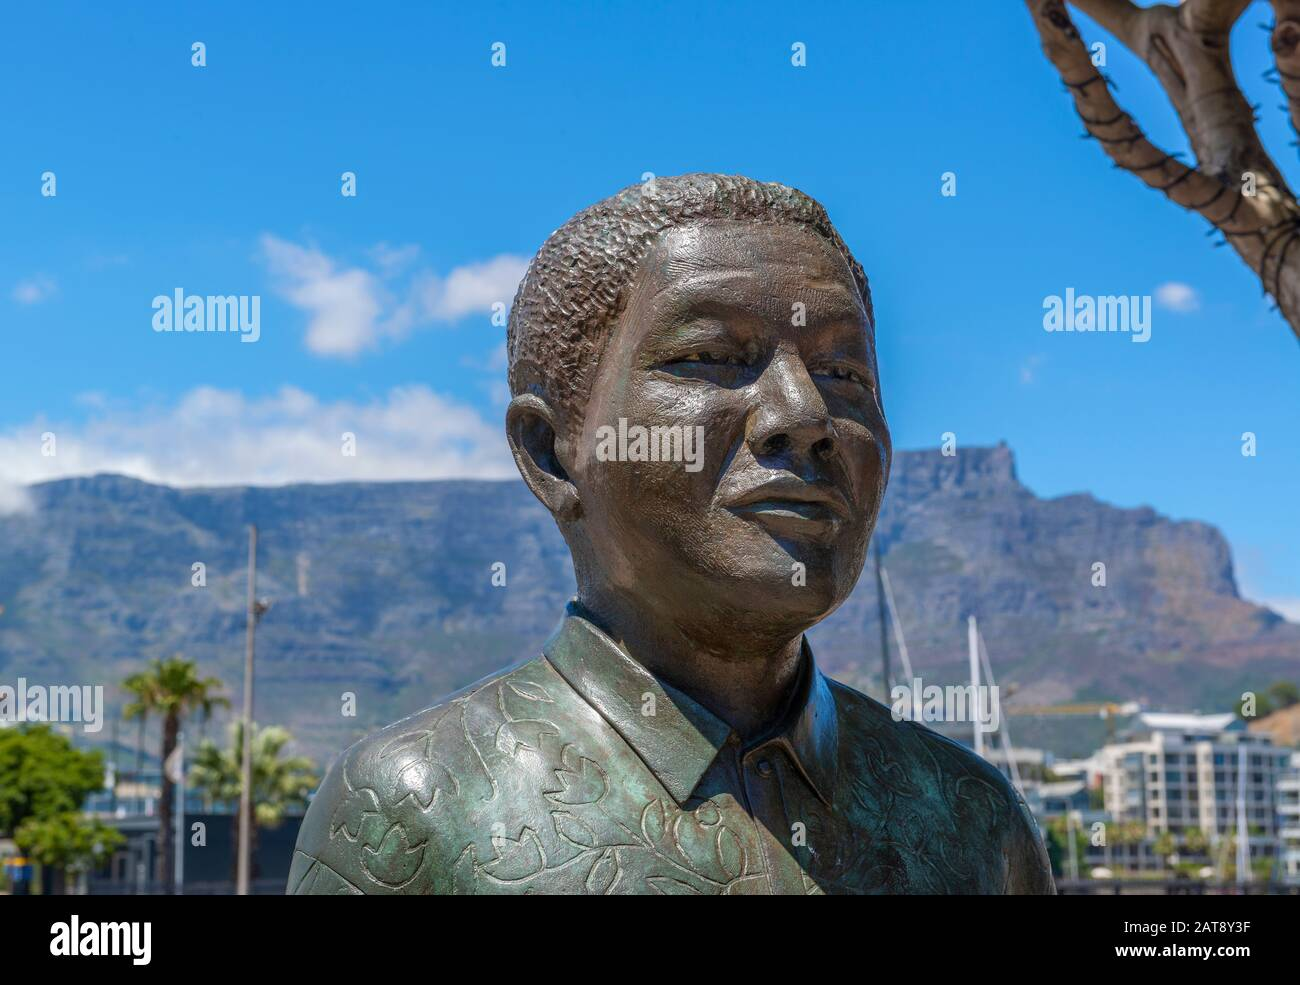 Statue of the late South African President, Nelson Mandela, a Nobel Peace Prize winner at Nobel Square, V&A Waterfront, Cape Town, South Africa Stock Photo